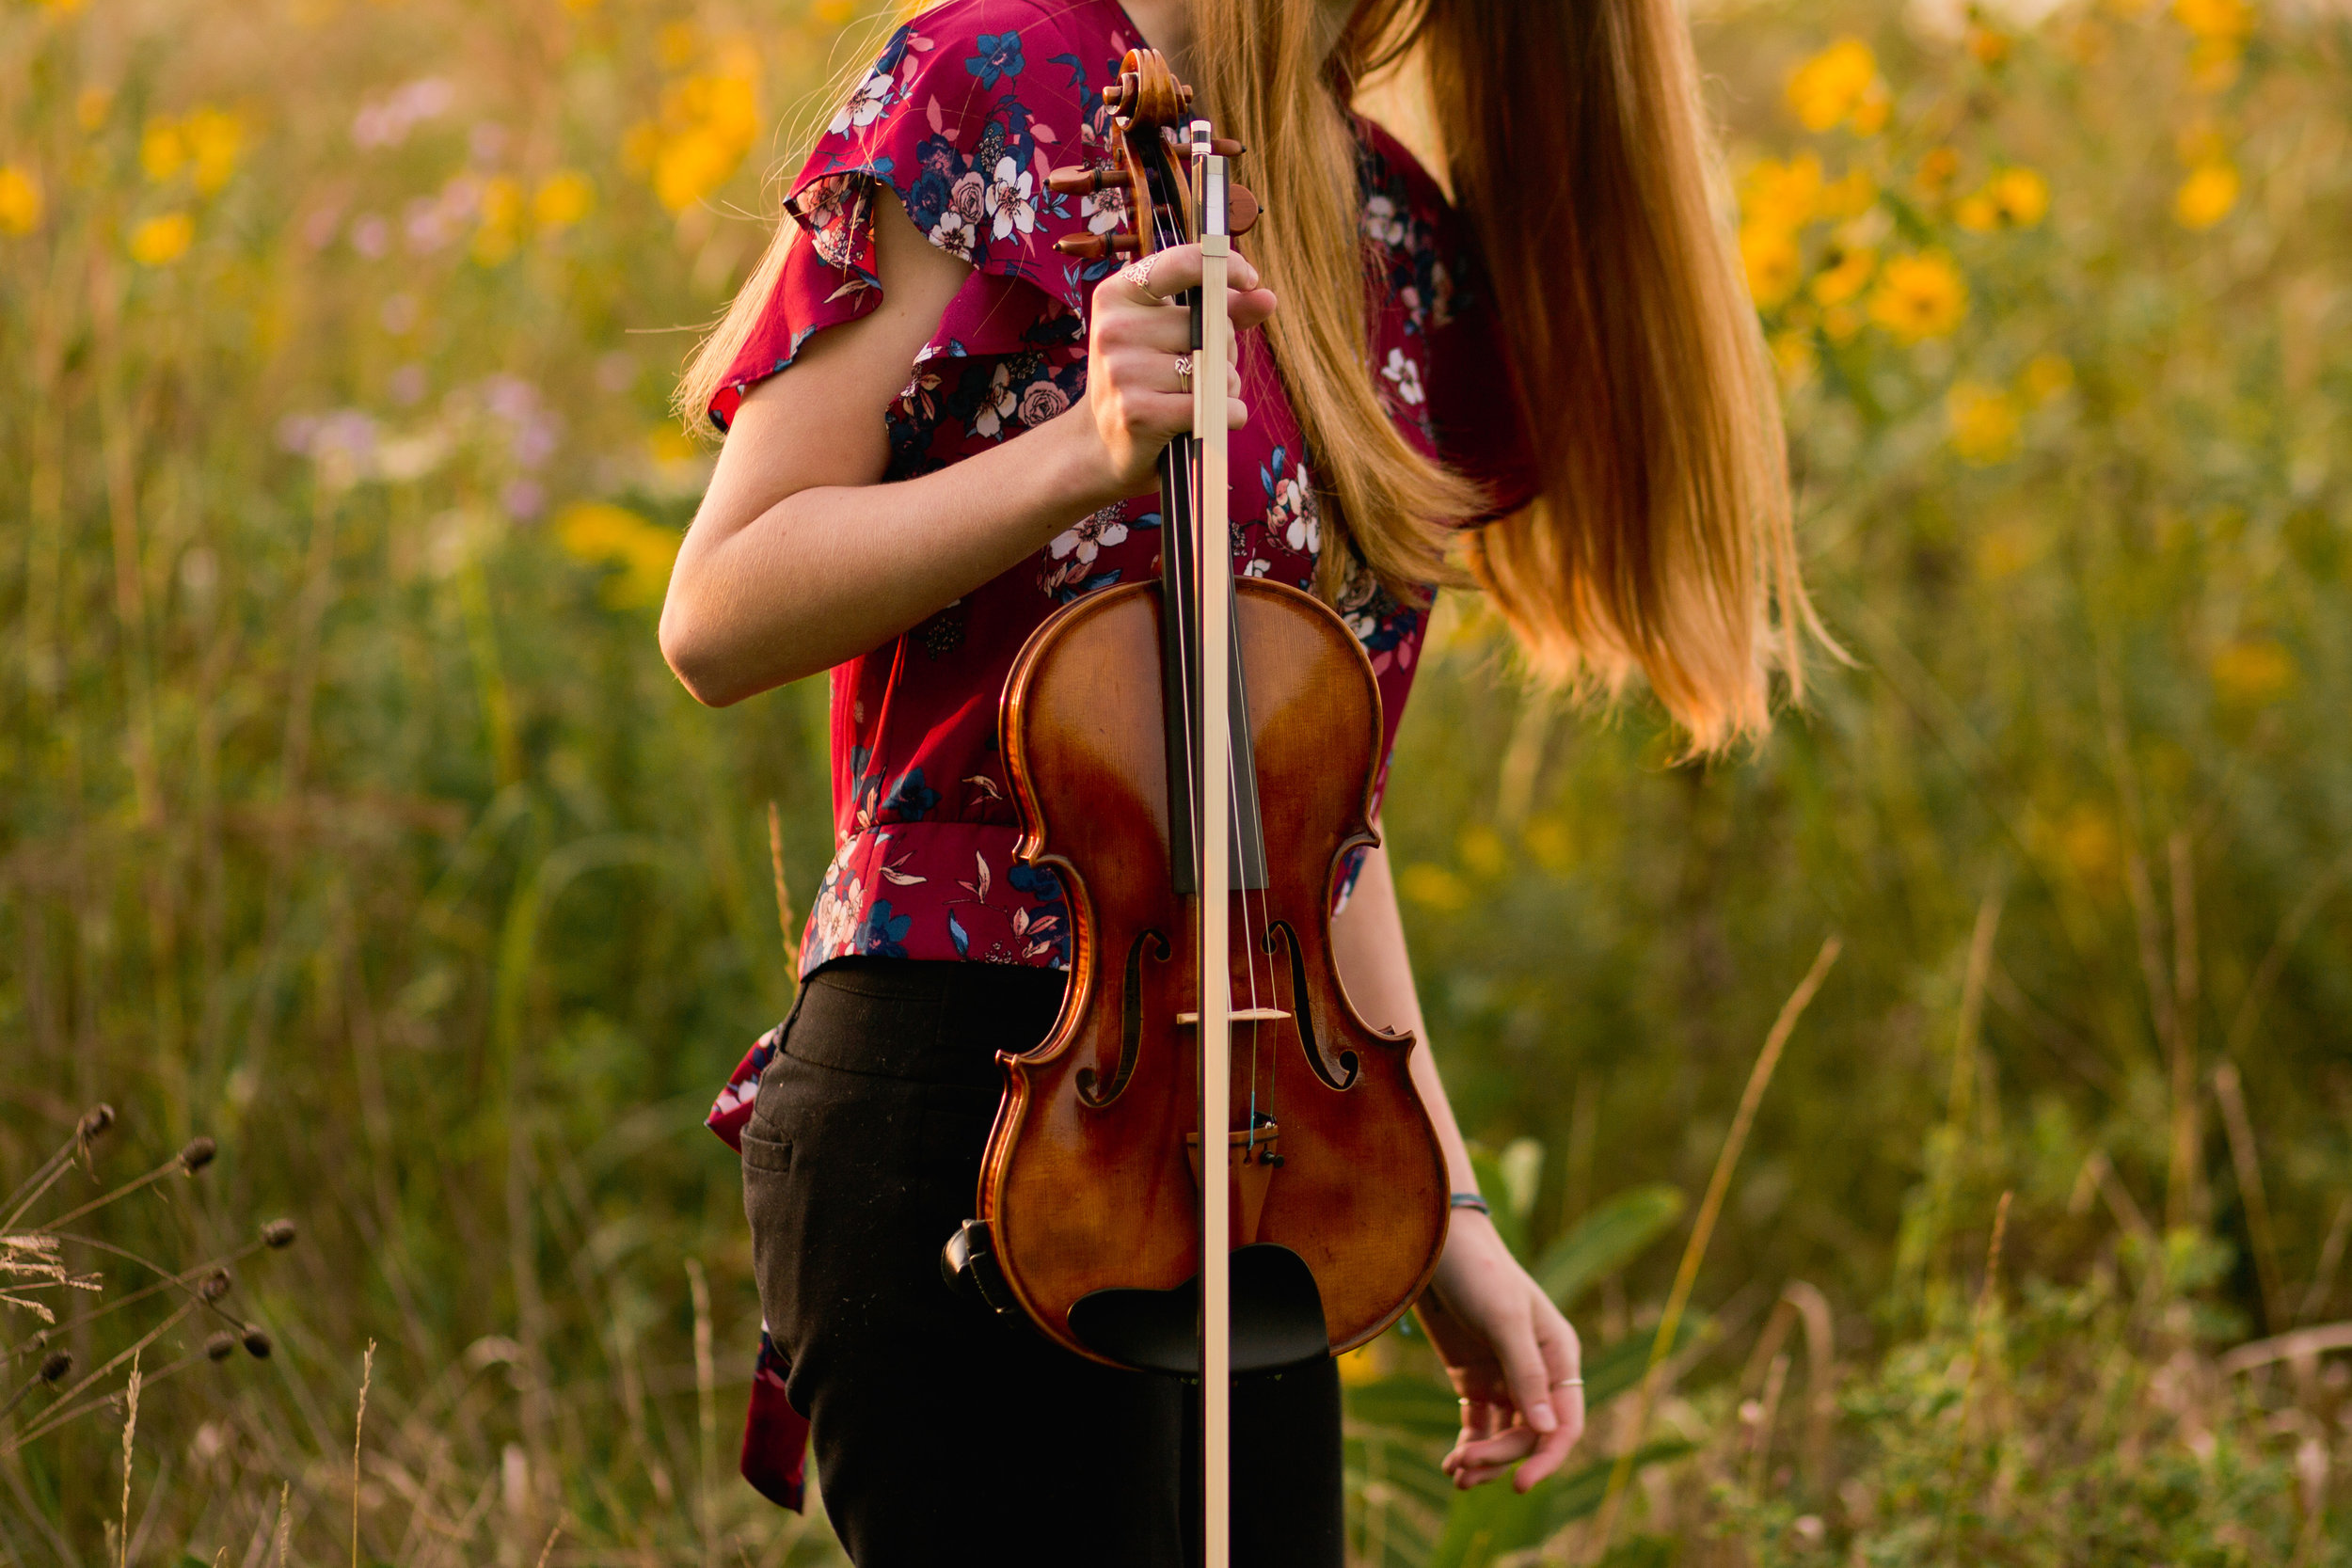 senior photos with violin and in field of flowers